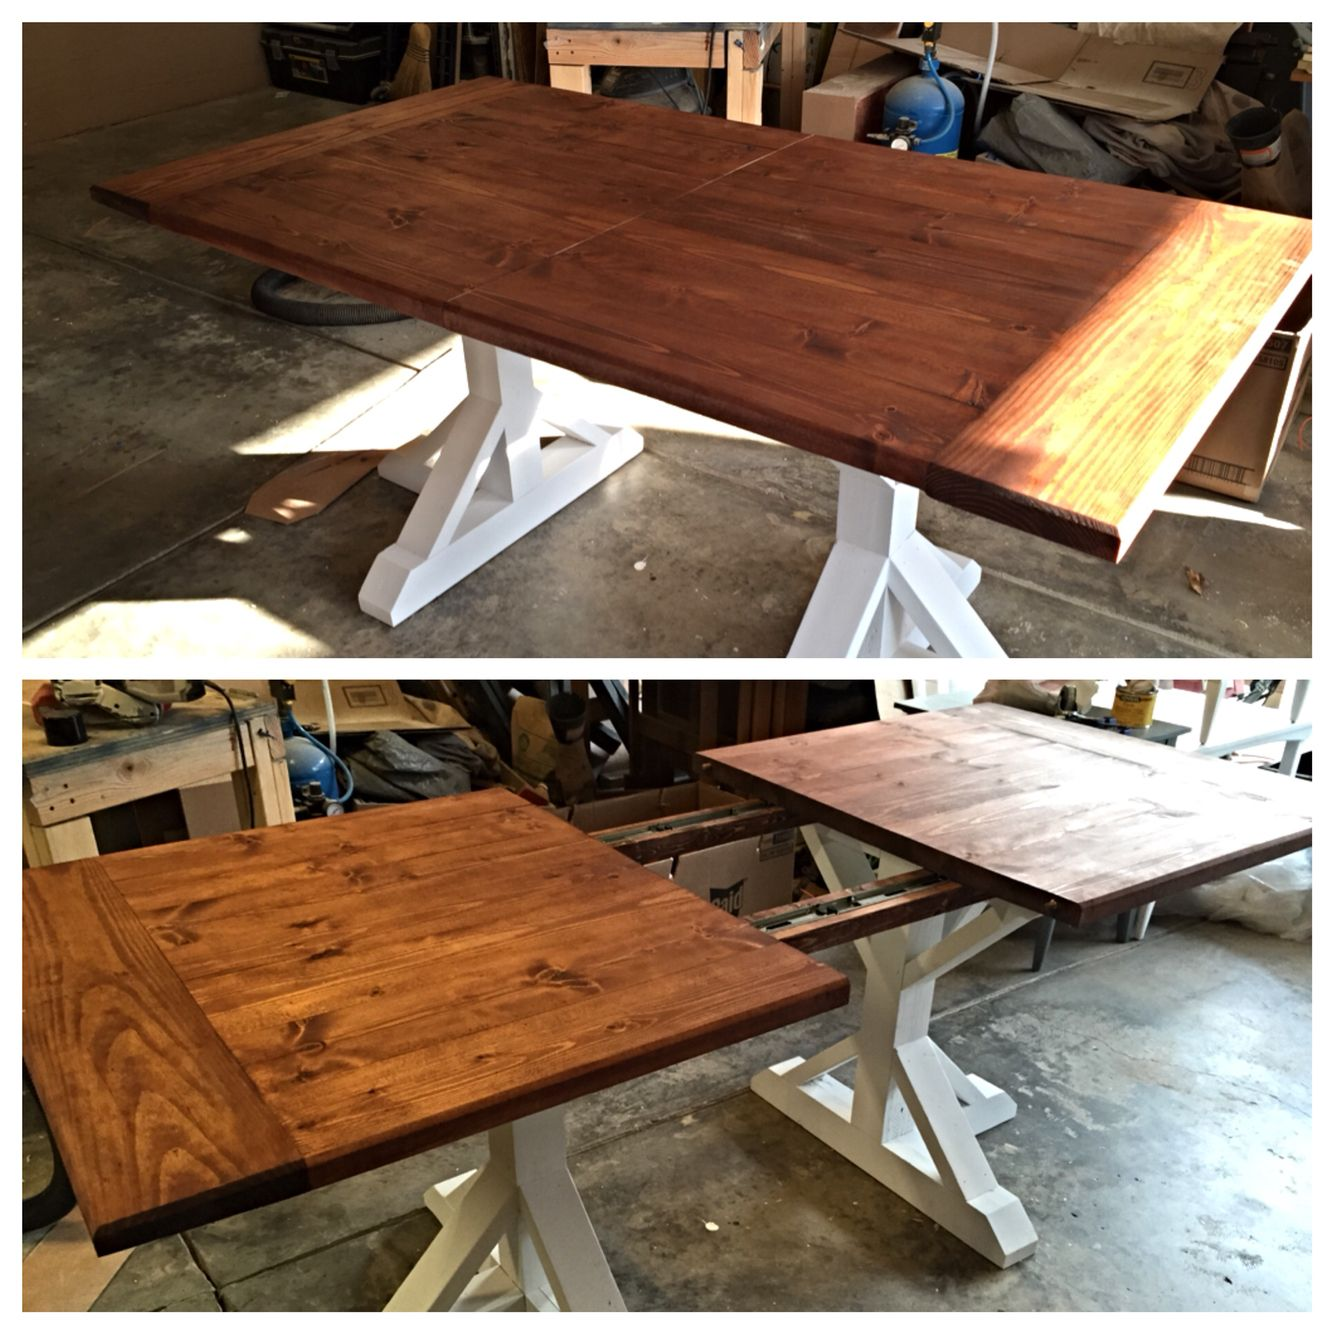 Rustic 7ft Farmhouse Table @BTWoodCraft #BTWoodCraft